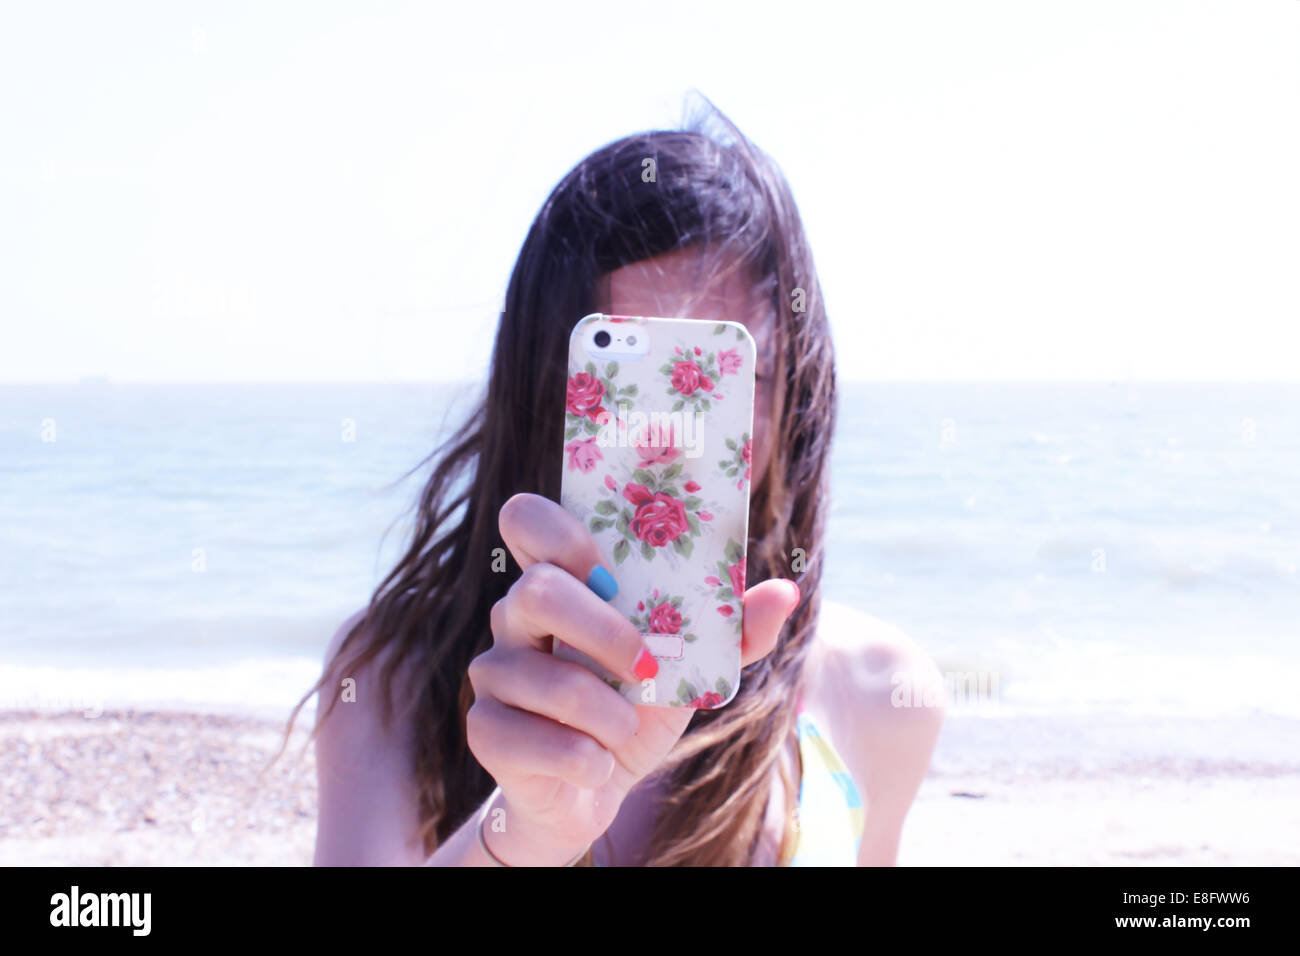 Girl taking photo with her mobile phone - Stock Image